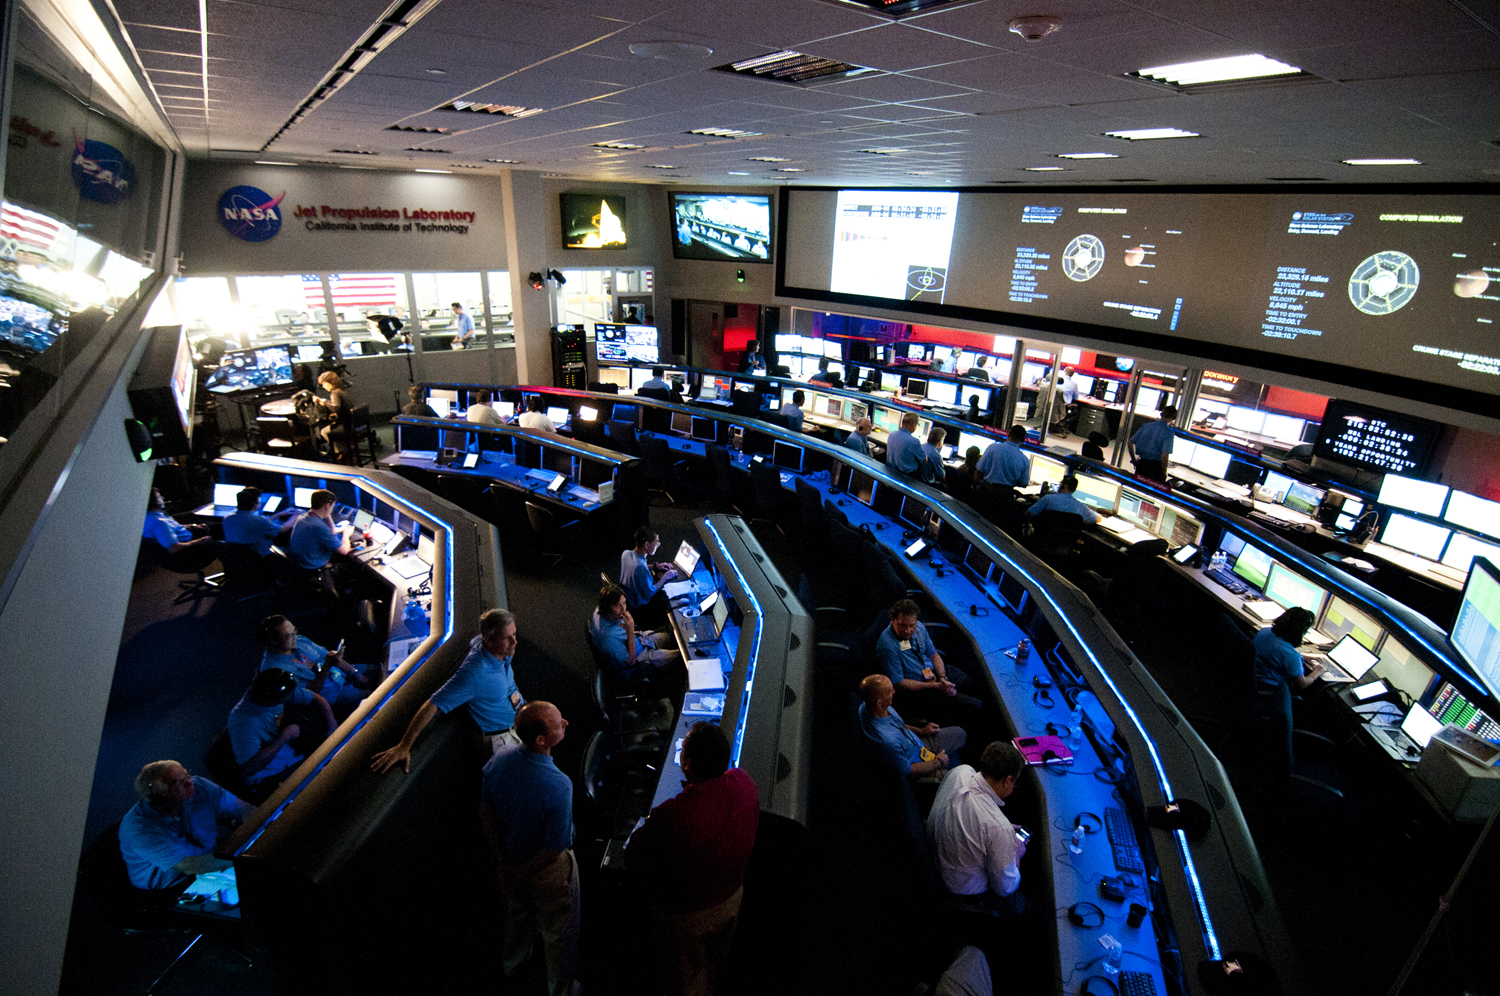 Space Flight Operations Facility At The Jet Propulsion